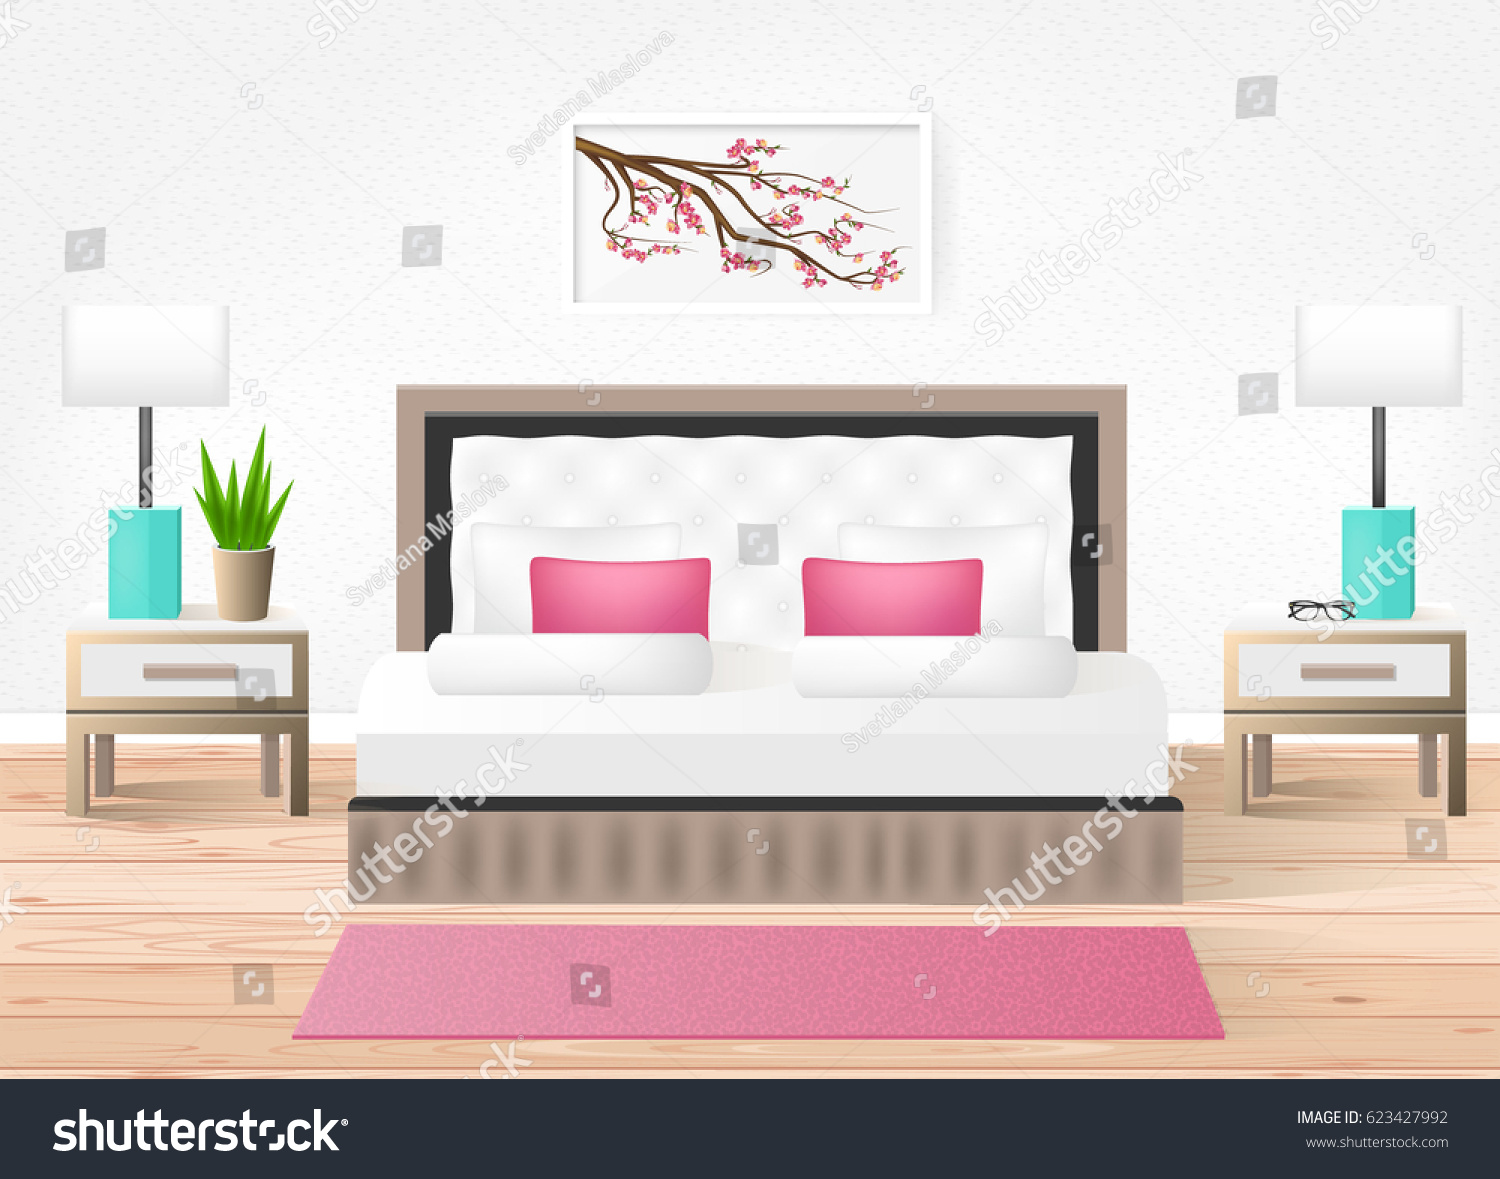 hotel room vector hotel interior with bed and nightstands modern bright room